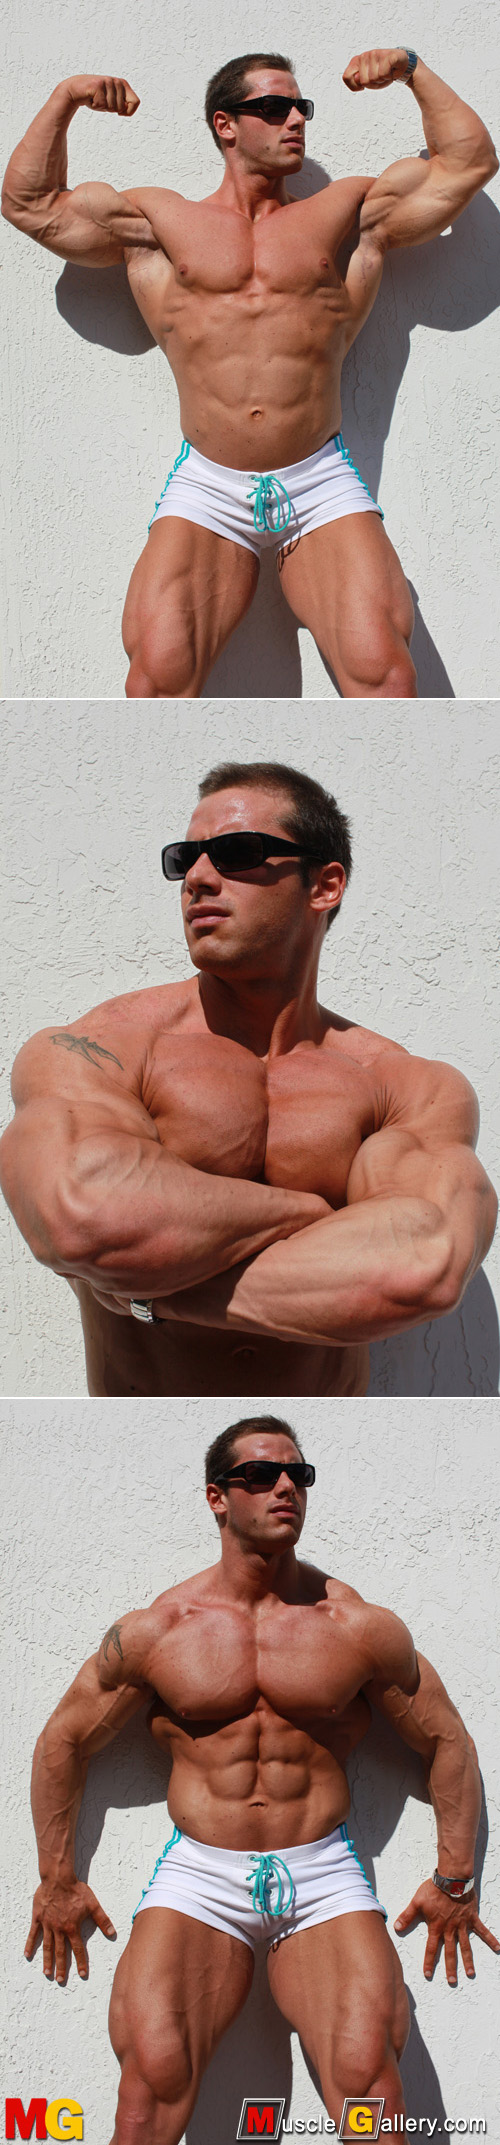 Hot male bodybuilder